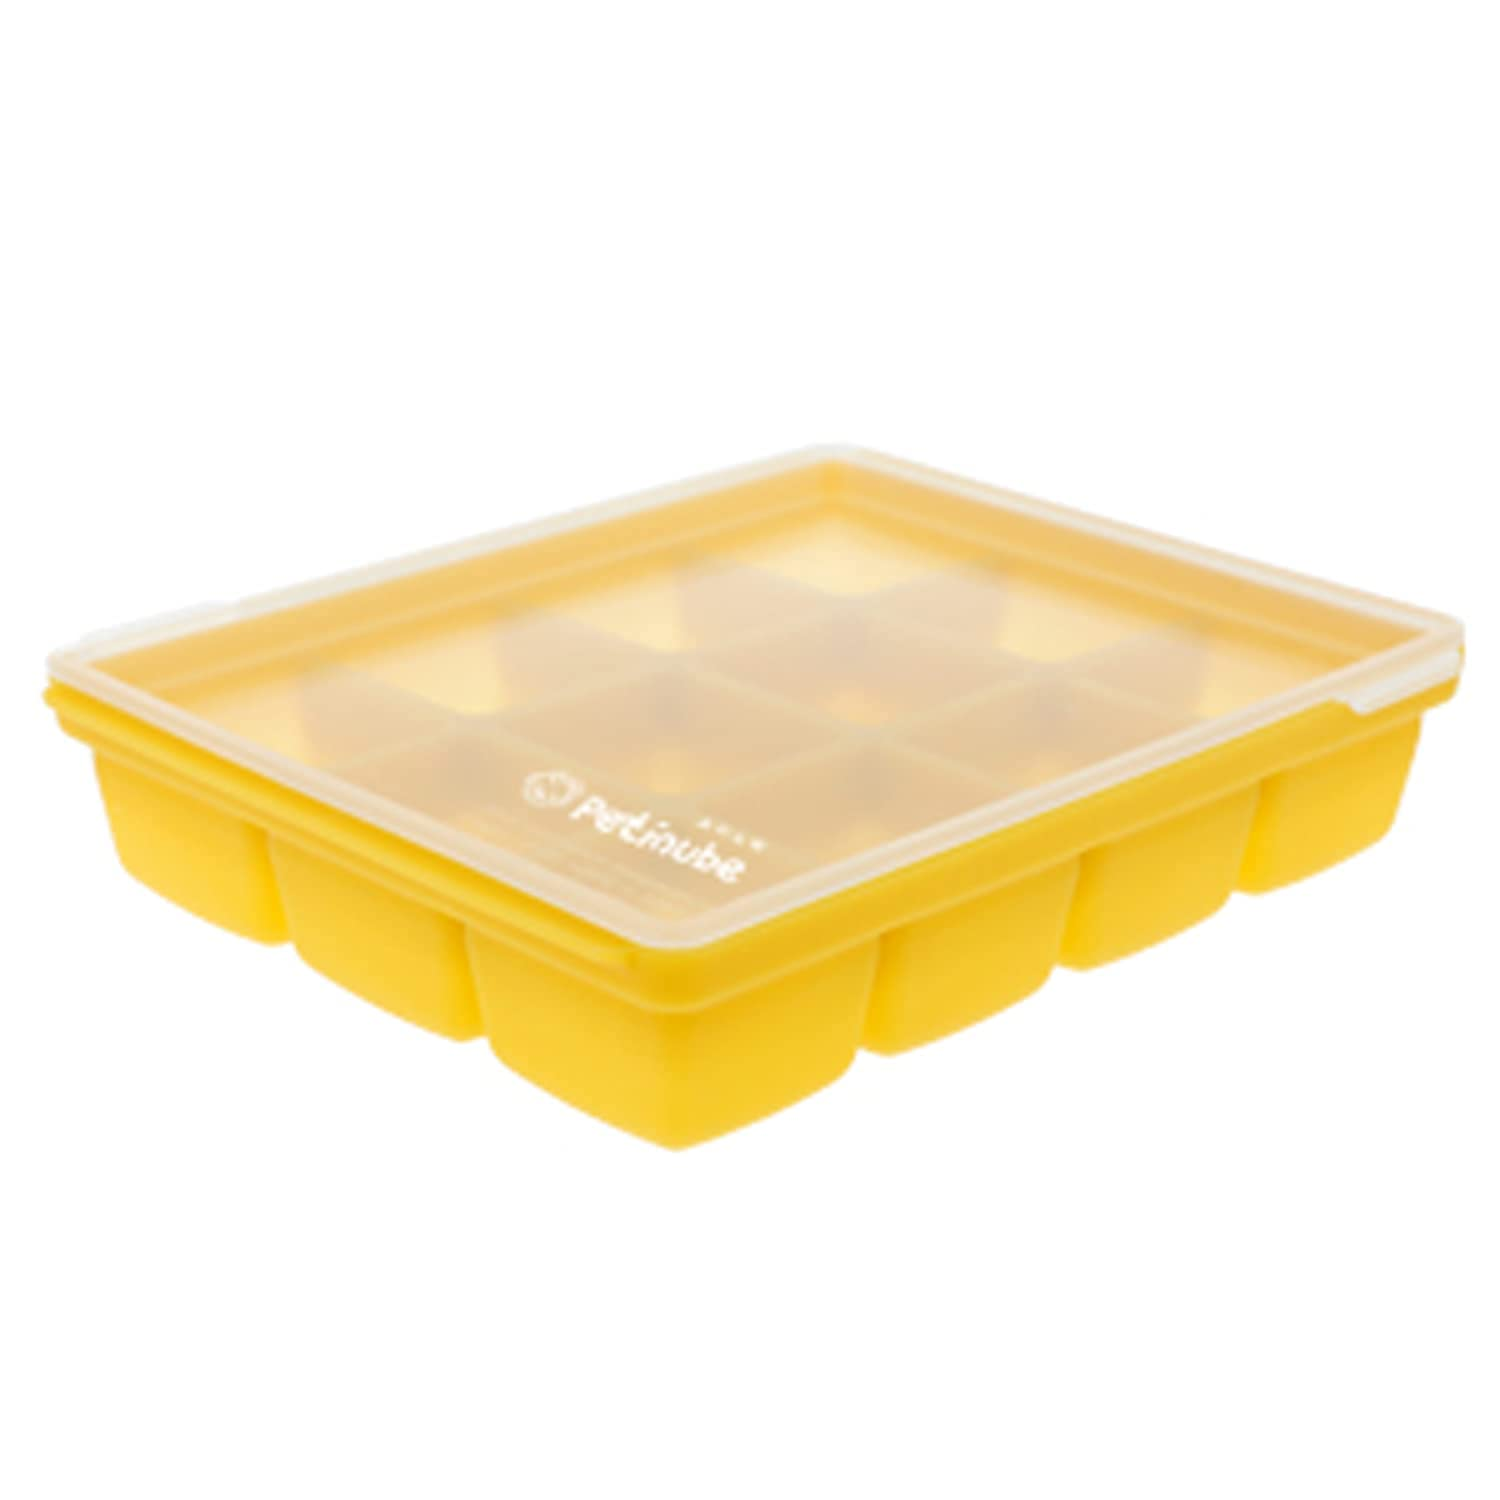 Petinube Silicone Cubes for Baby Food Storage, Silicone Baby Food Freezer Tray with Clip-On Lid, Freezer Storage with Lid for All Kinds of Baby Food, Easy and Safe Design (Mustard, 12 Cubes)